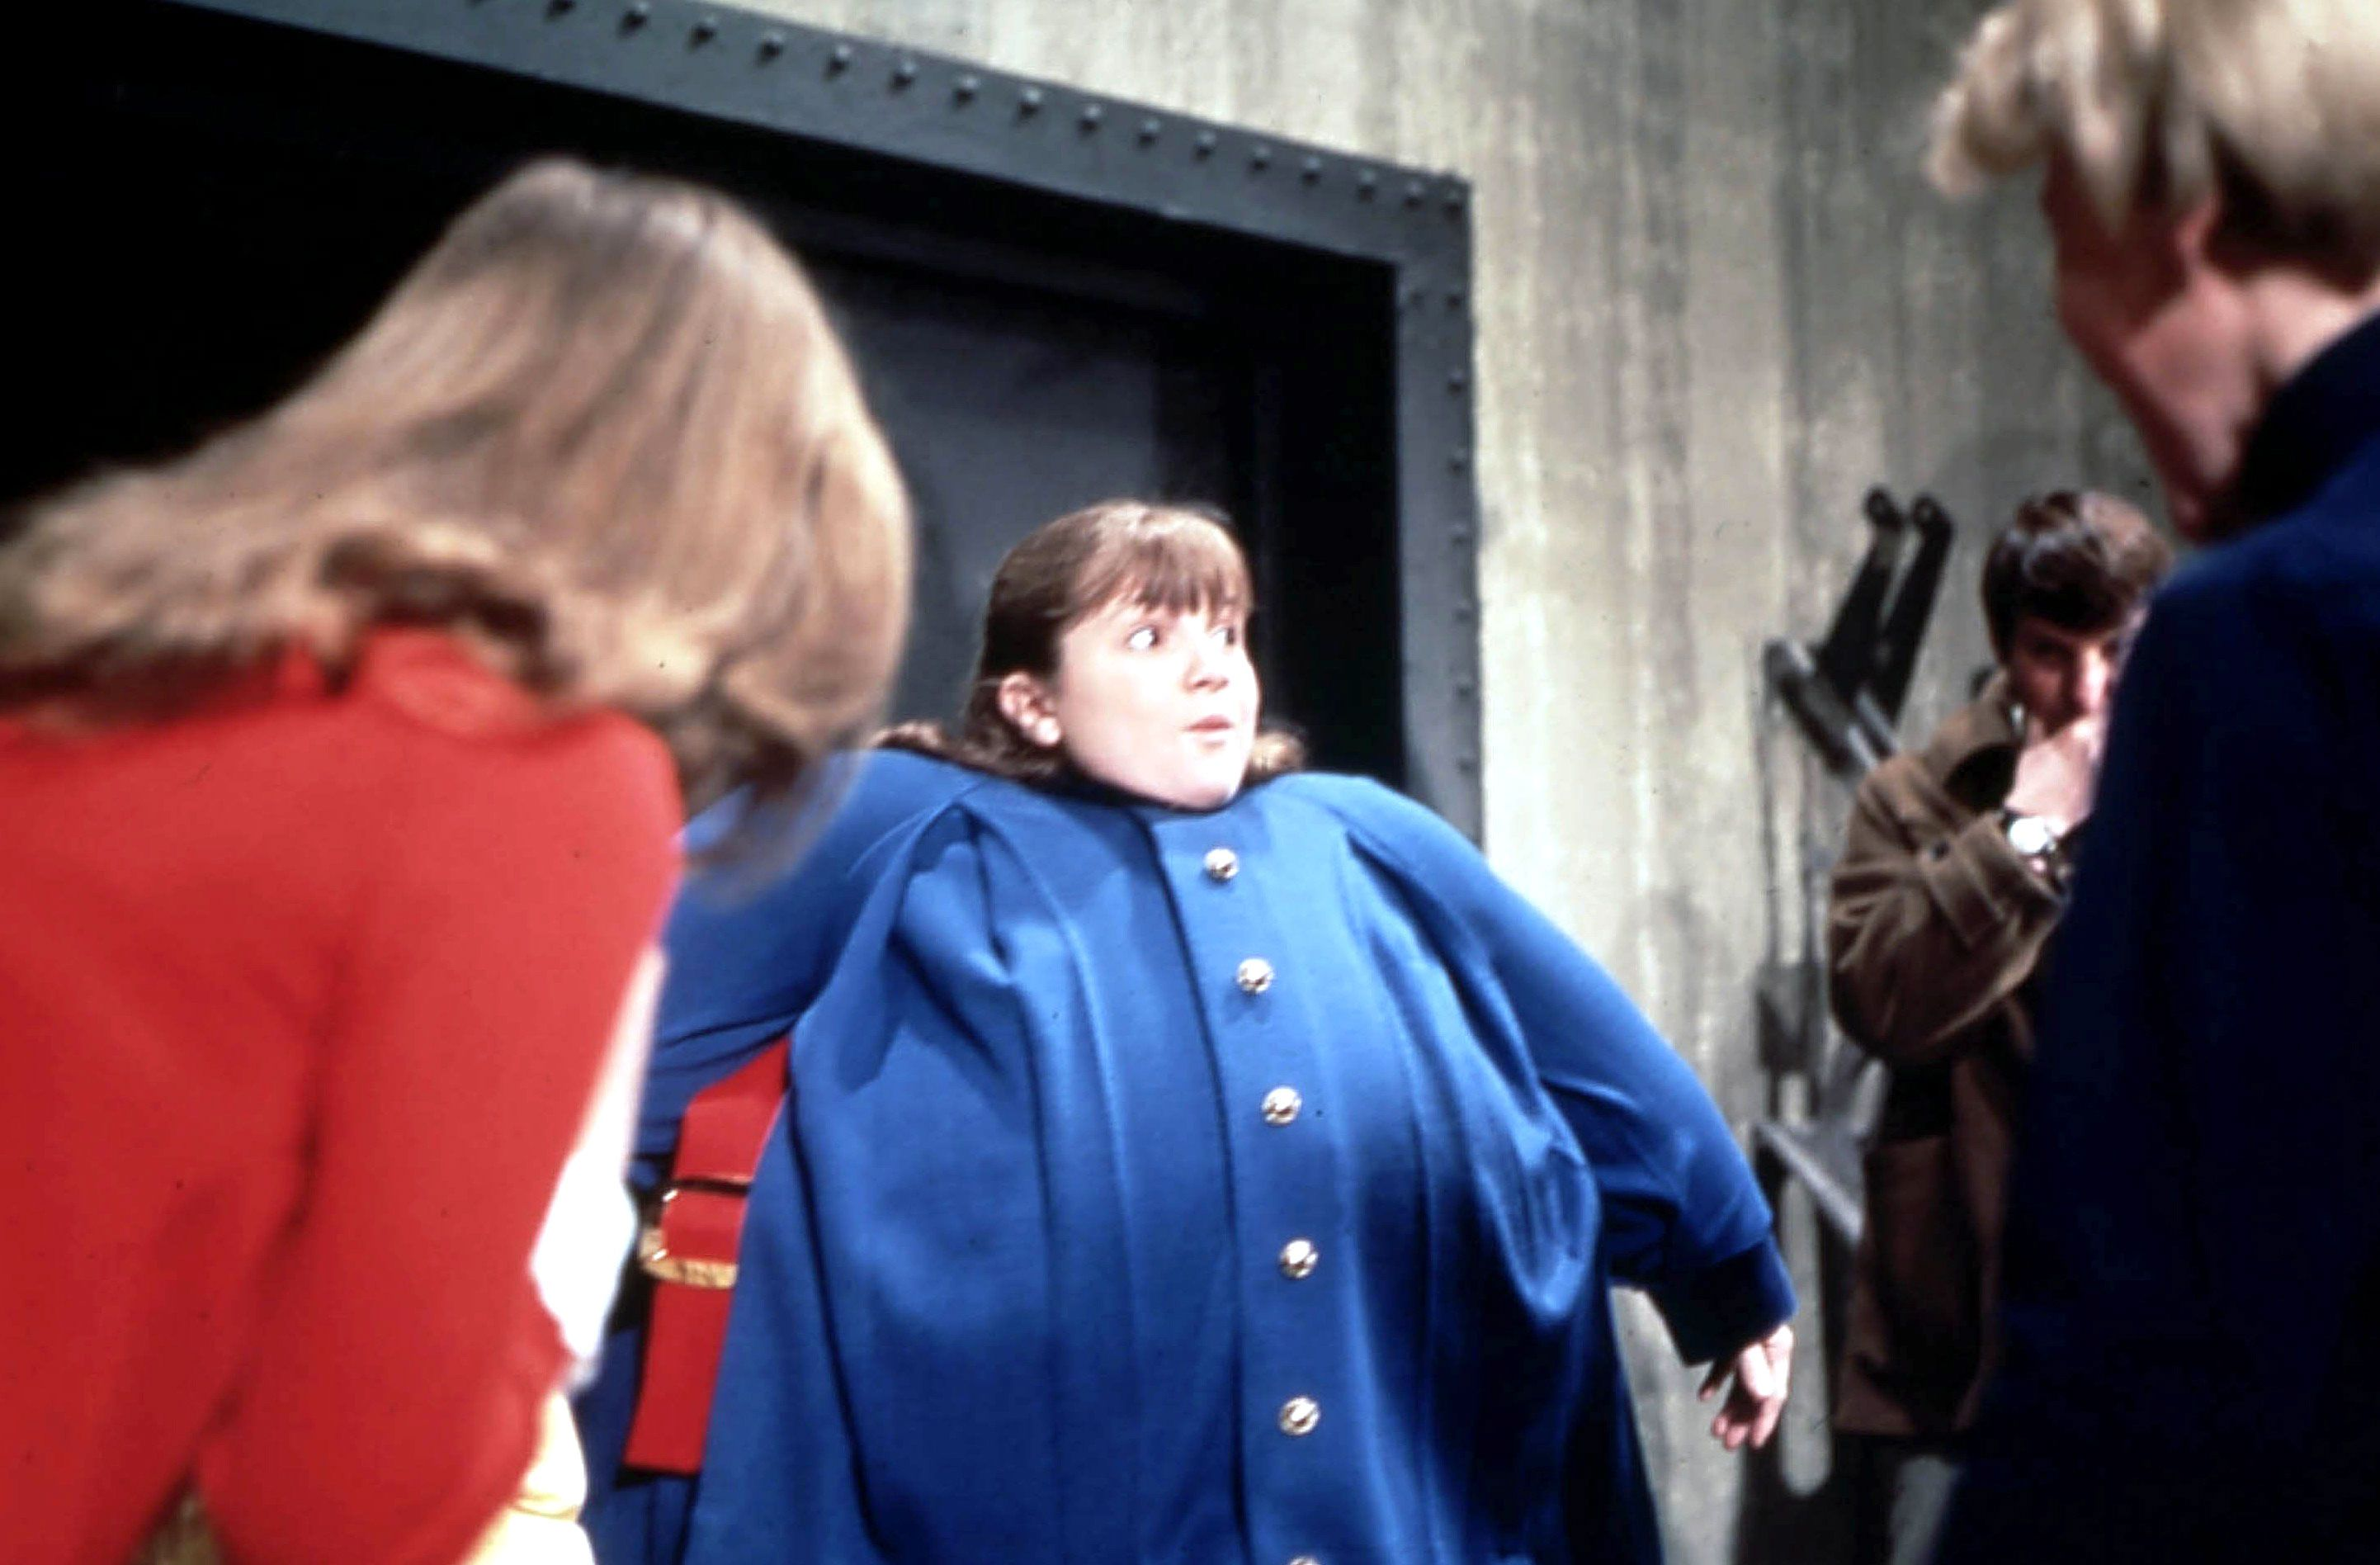 Willy Wonka & the Chocolate Factory star Denise Nickerson dies, aged 62